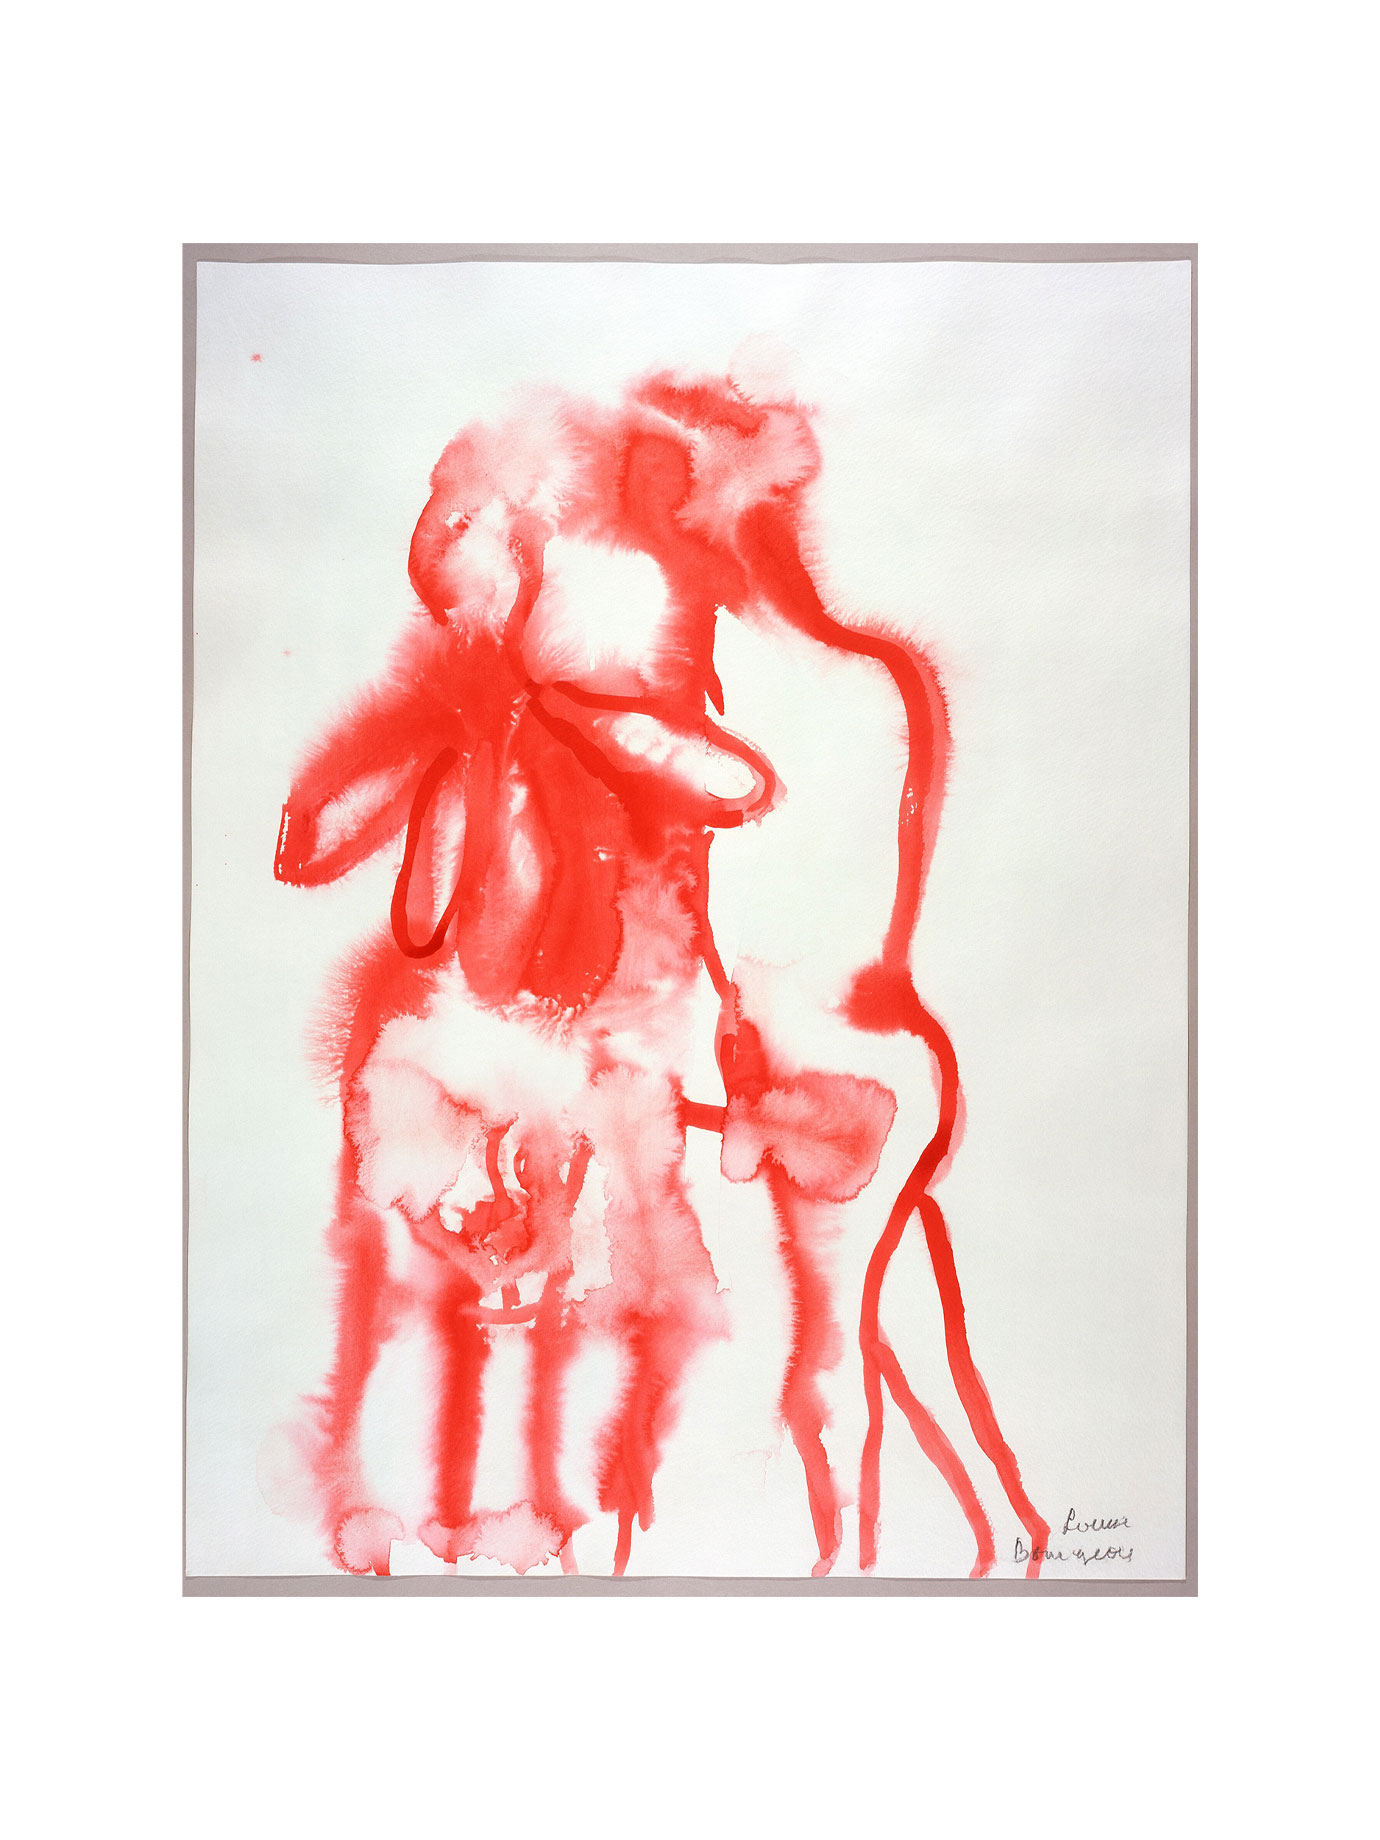 A simple abstract drawing in red of two people hugging.